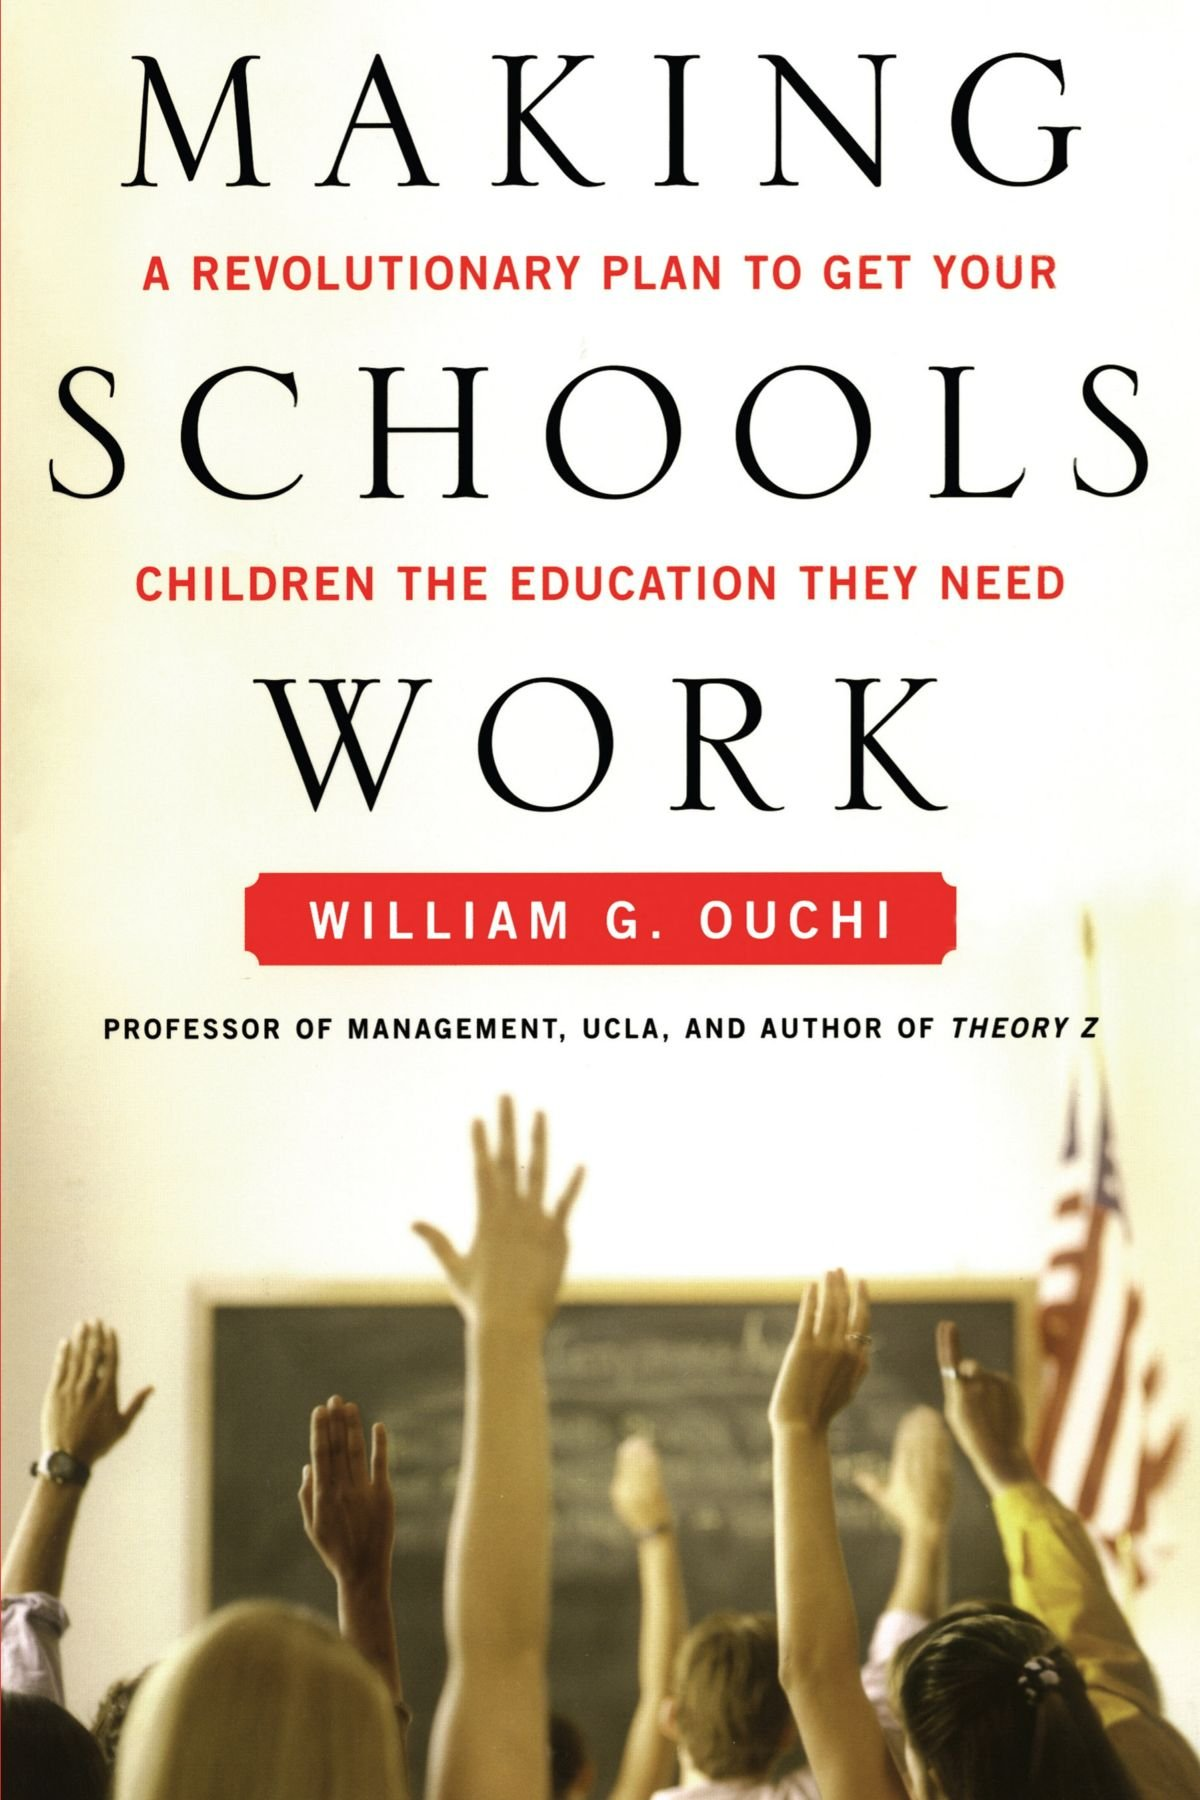 Making Schools Work: A Revolutionary Plan to Get Your Children the